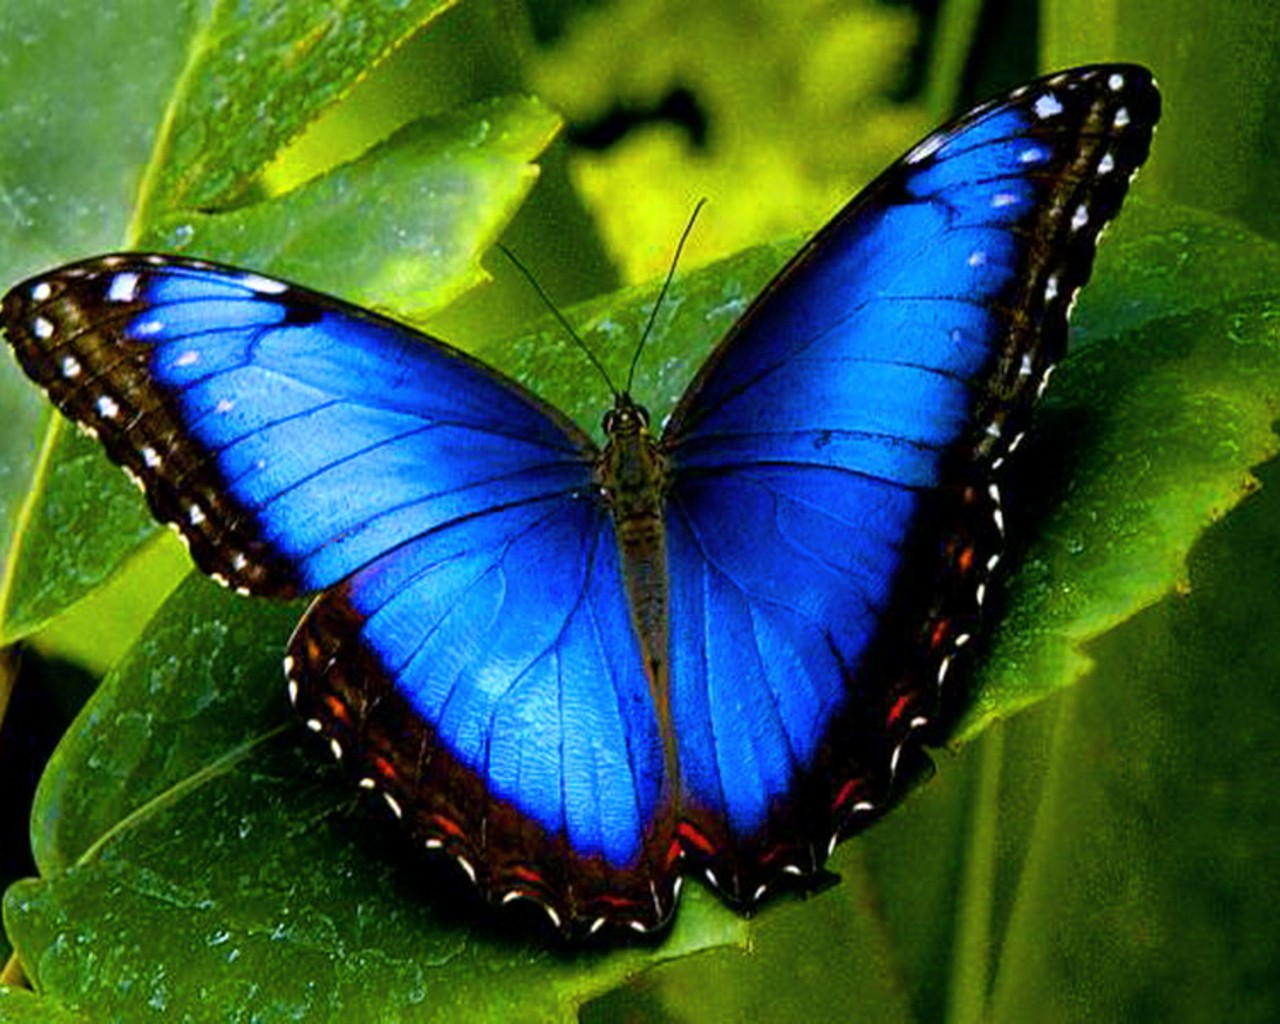 55 Colorful ButterflyHD Images Wallpapers Download 1280x1024